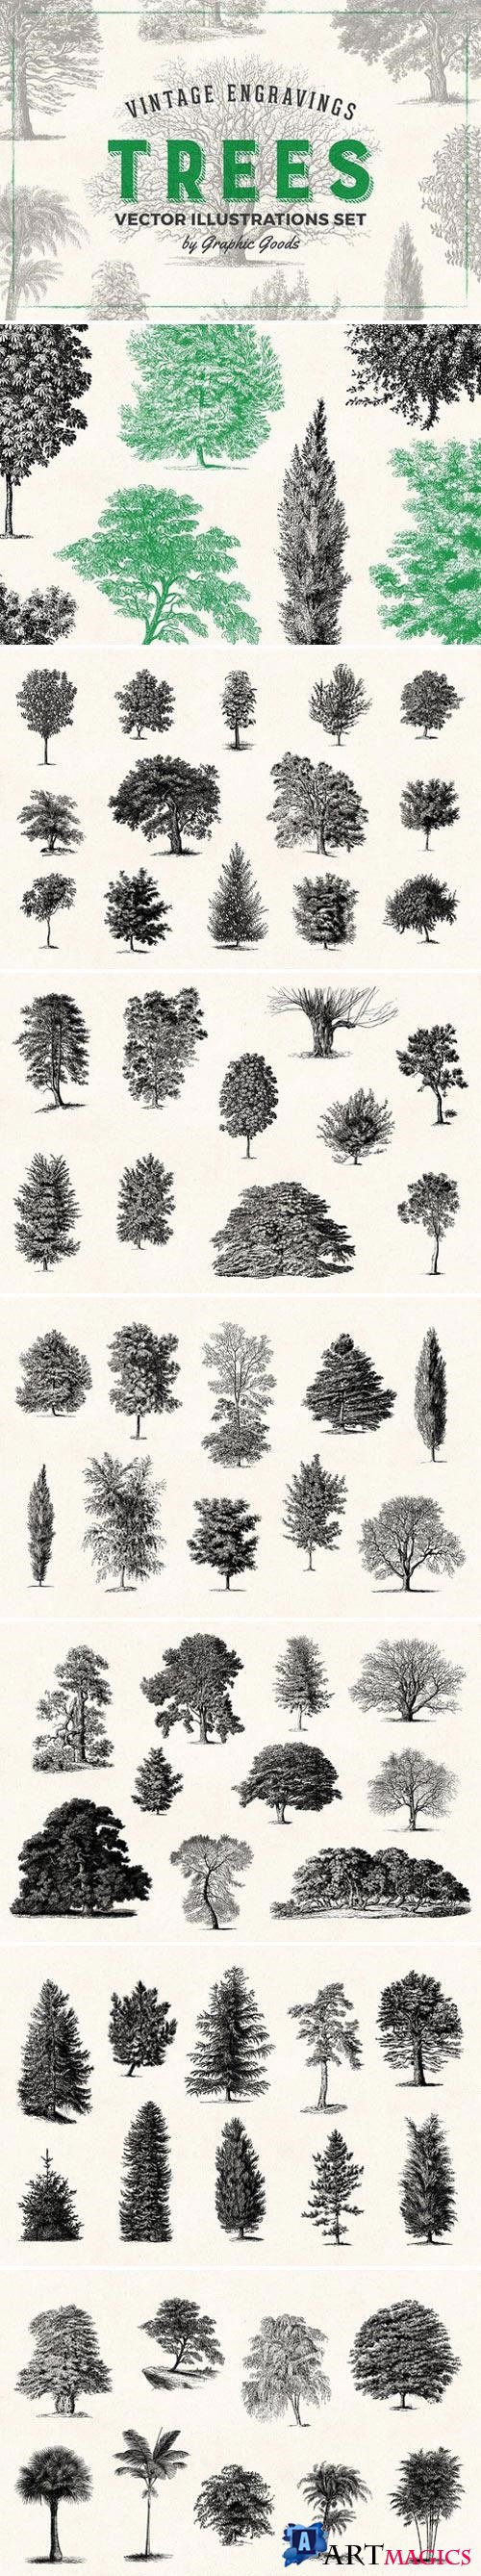 Trees - Vintage Illustrations Set 1566833